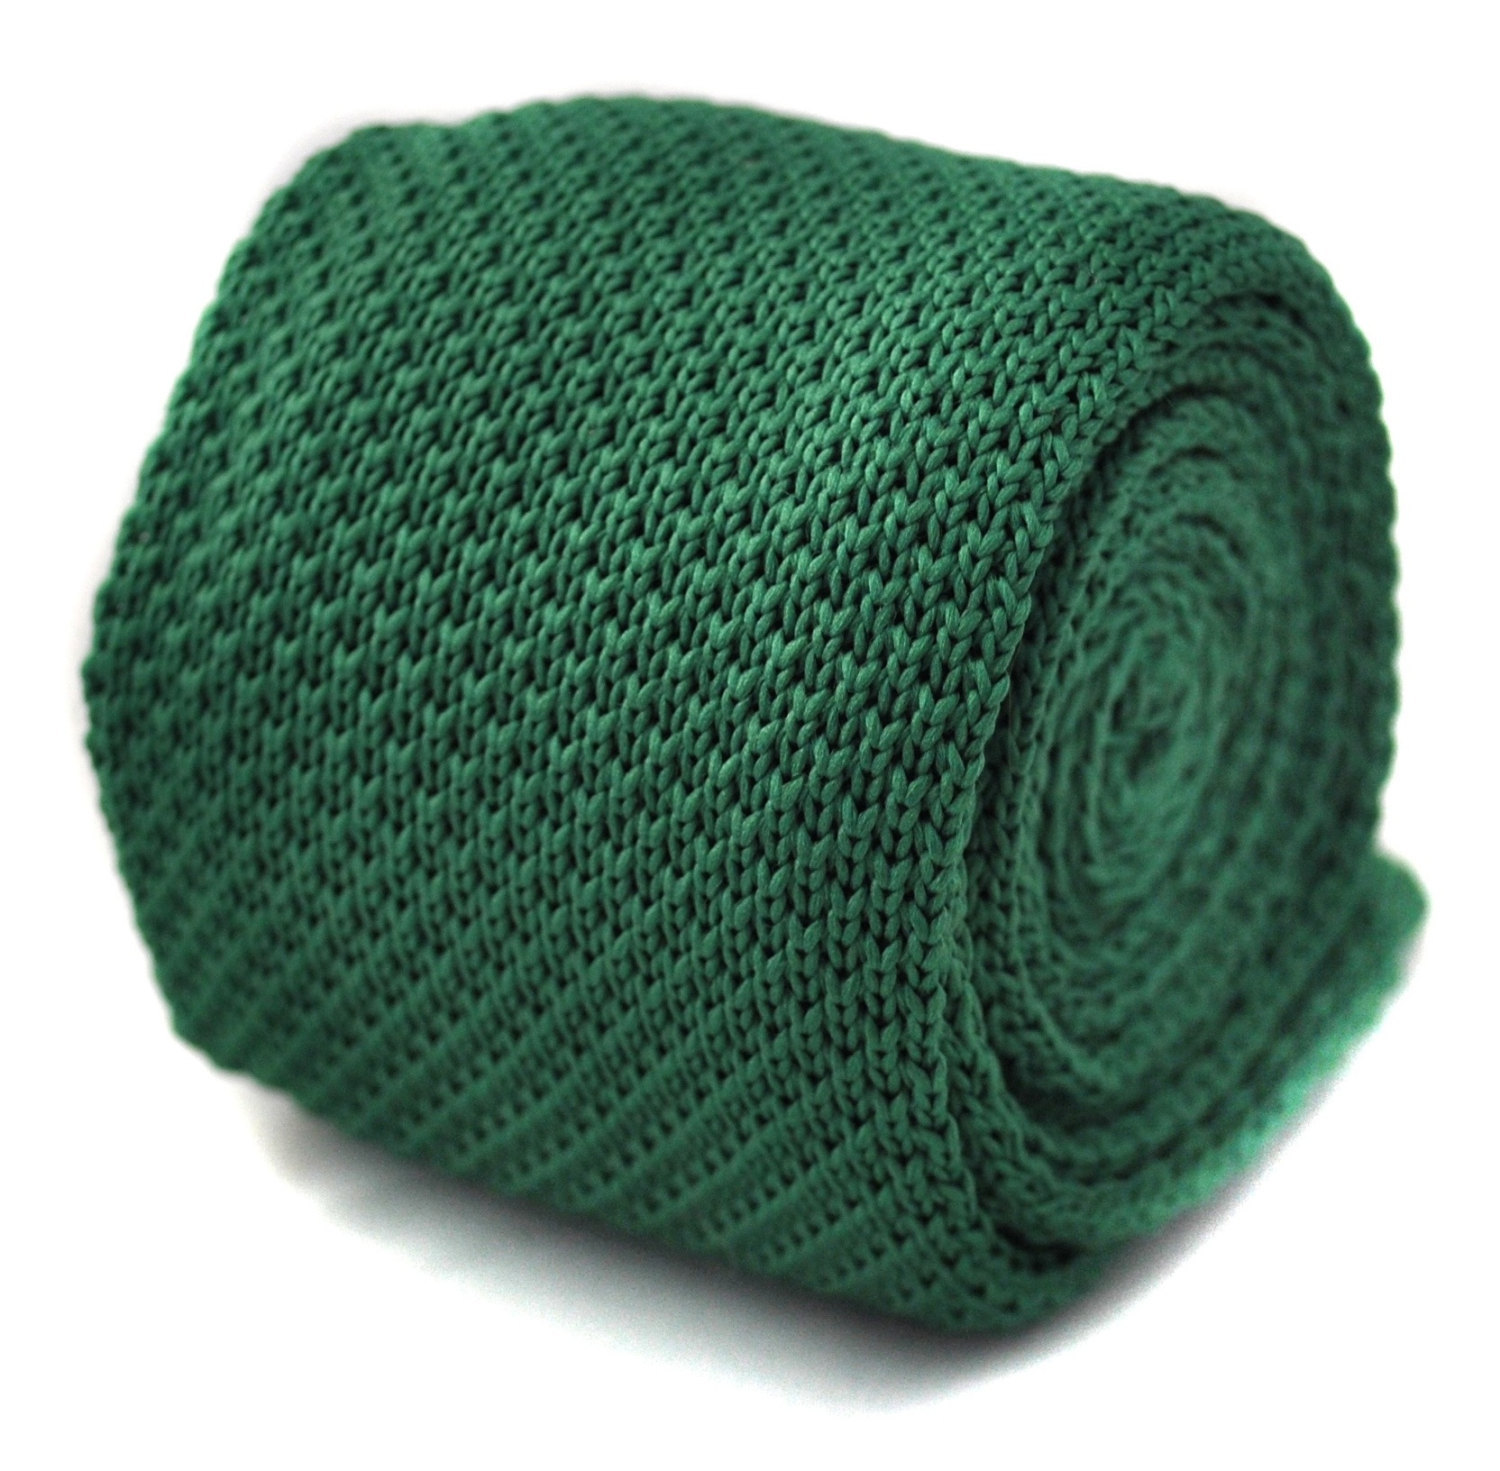 Plain dark green knitted skinny tie with flat end by Frederick Thomas FT266